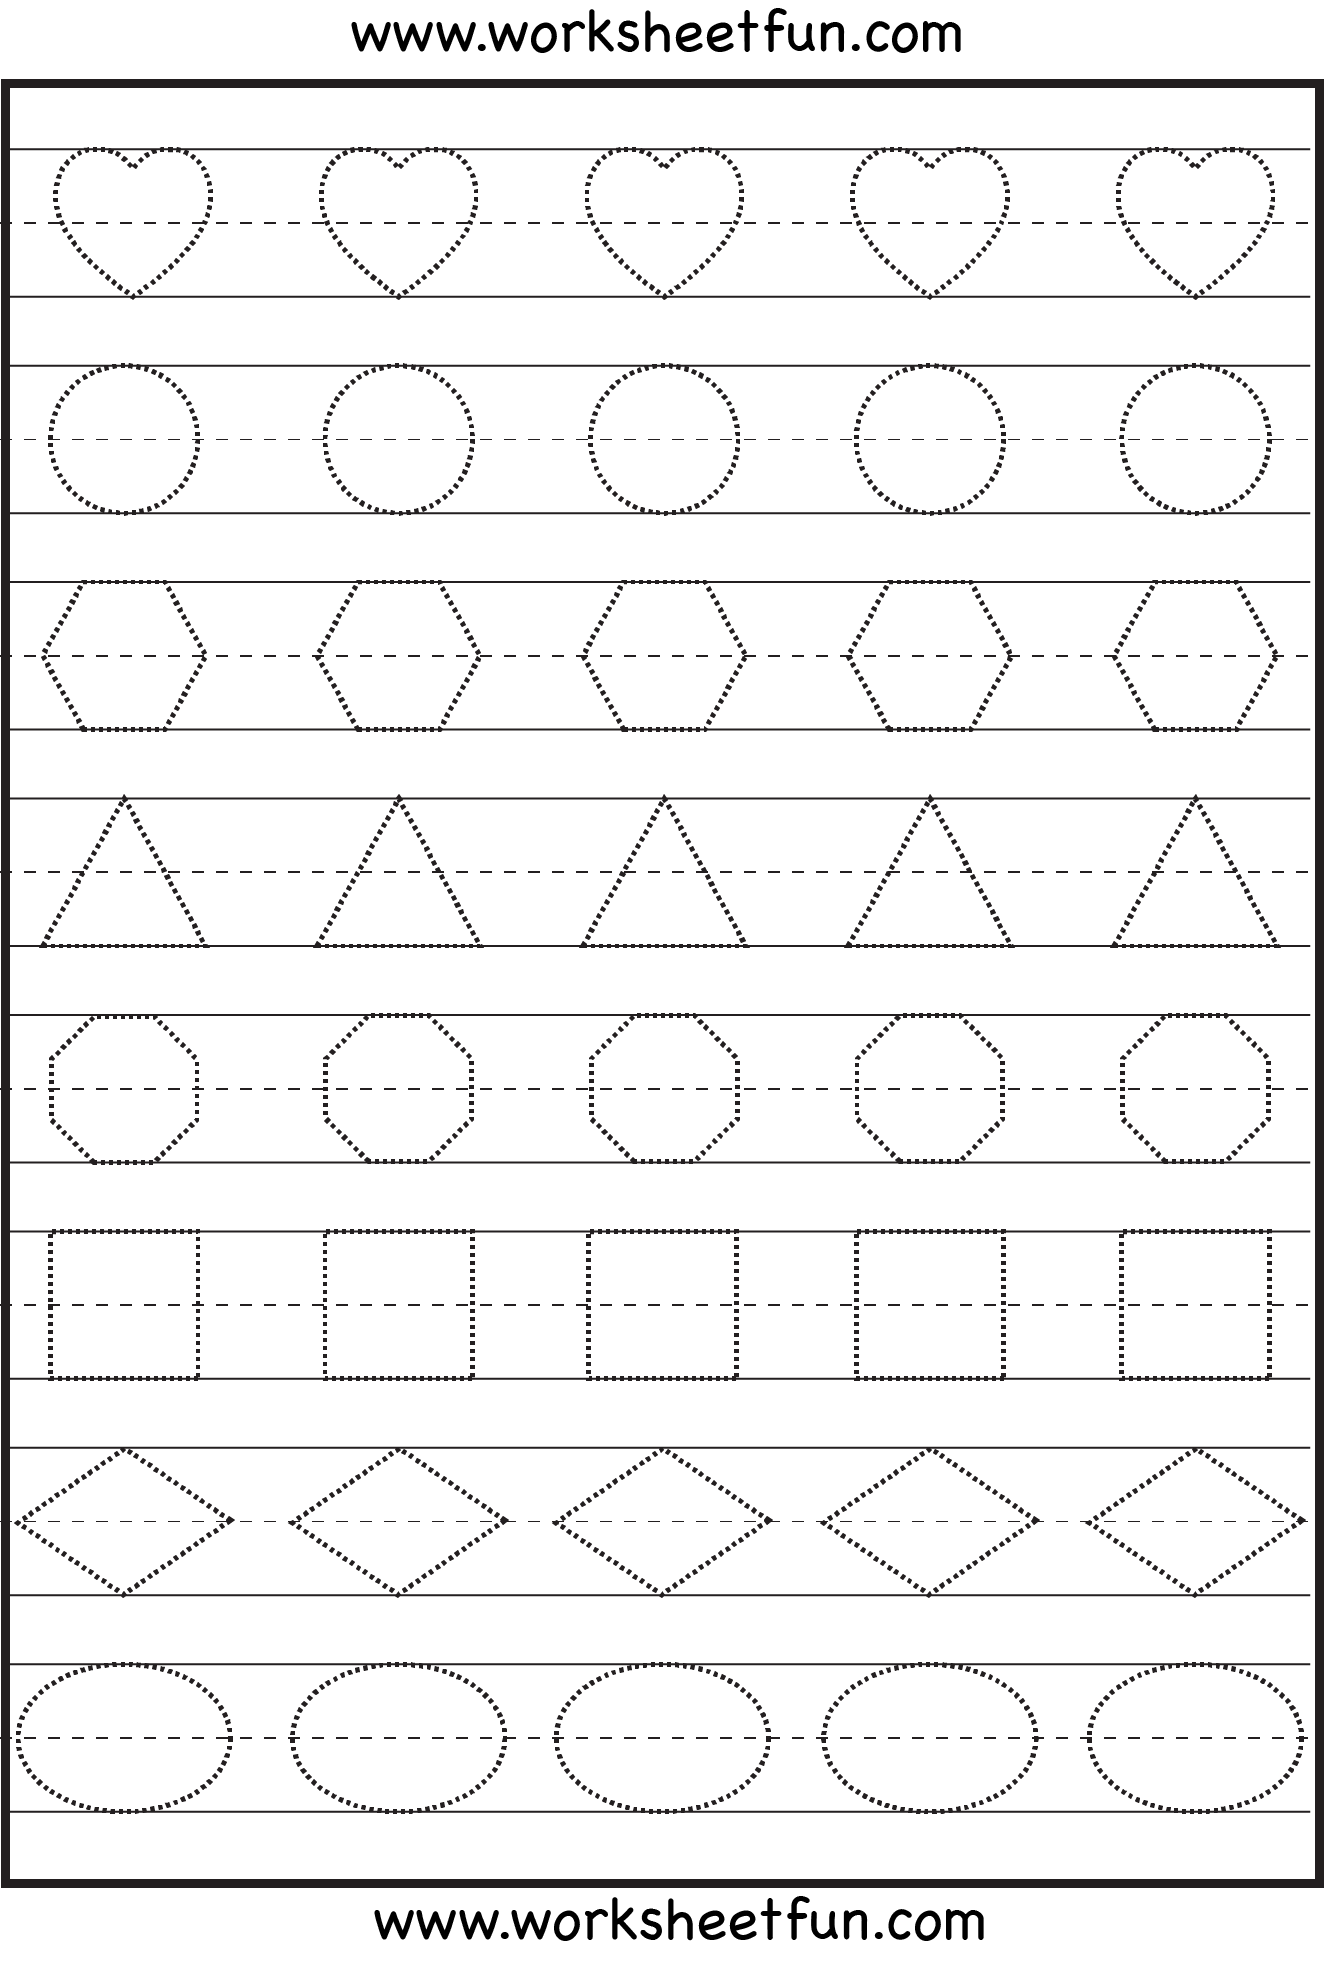 Preschool Printable Images Gallery Category Page 3